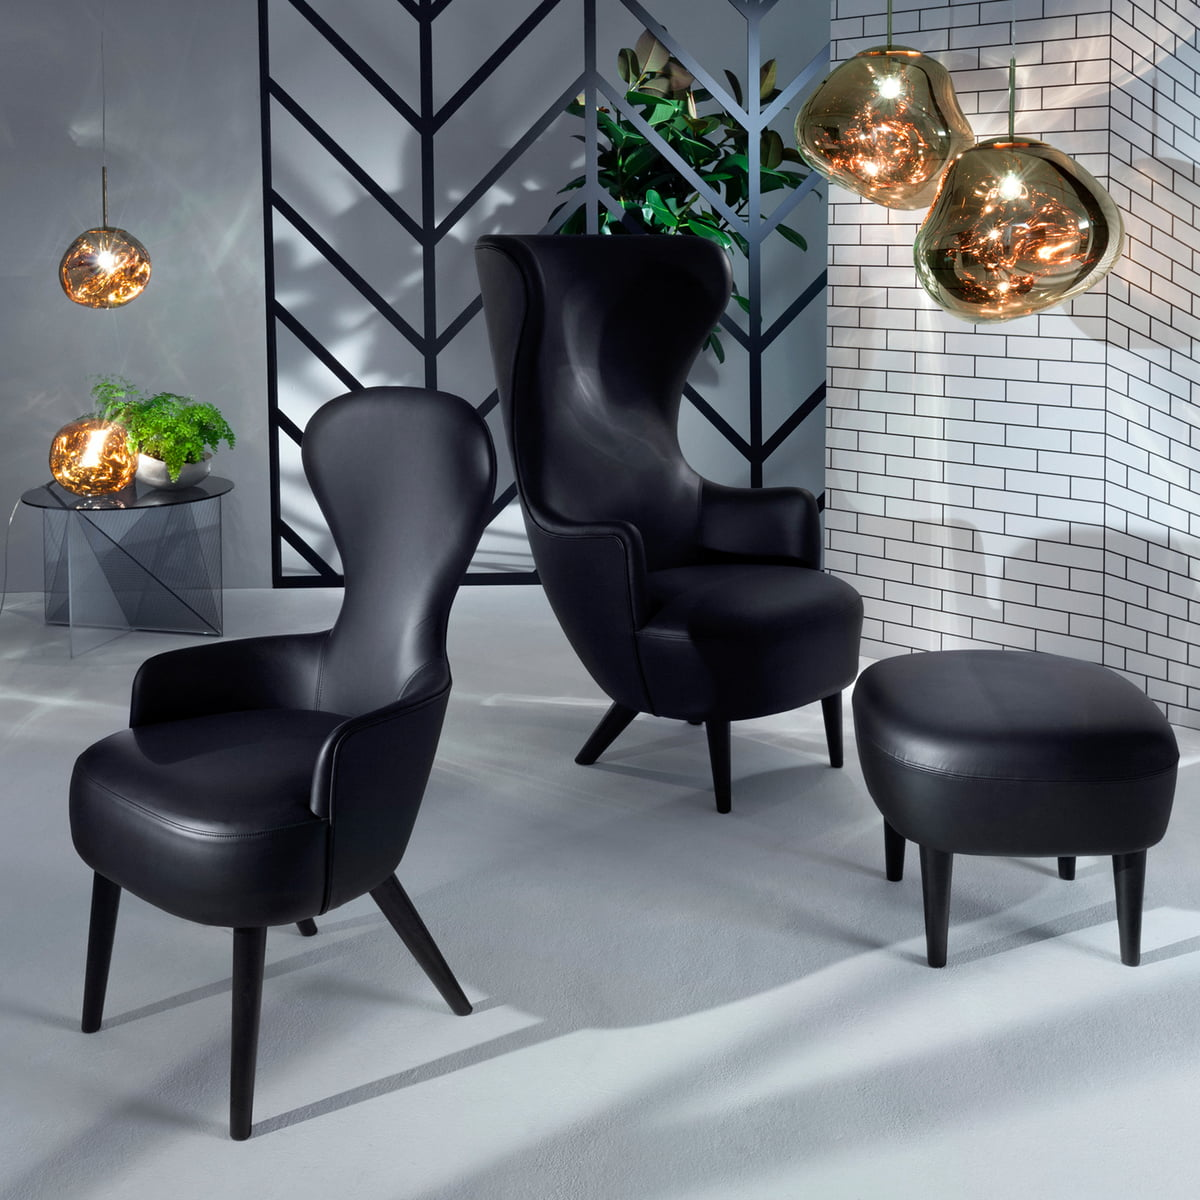 melt pendelleuchte von tom dixon im shop. Black Bedroom Furniture Sets. Home Design Ideas